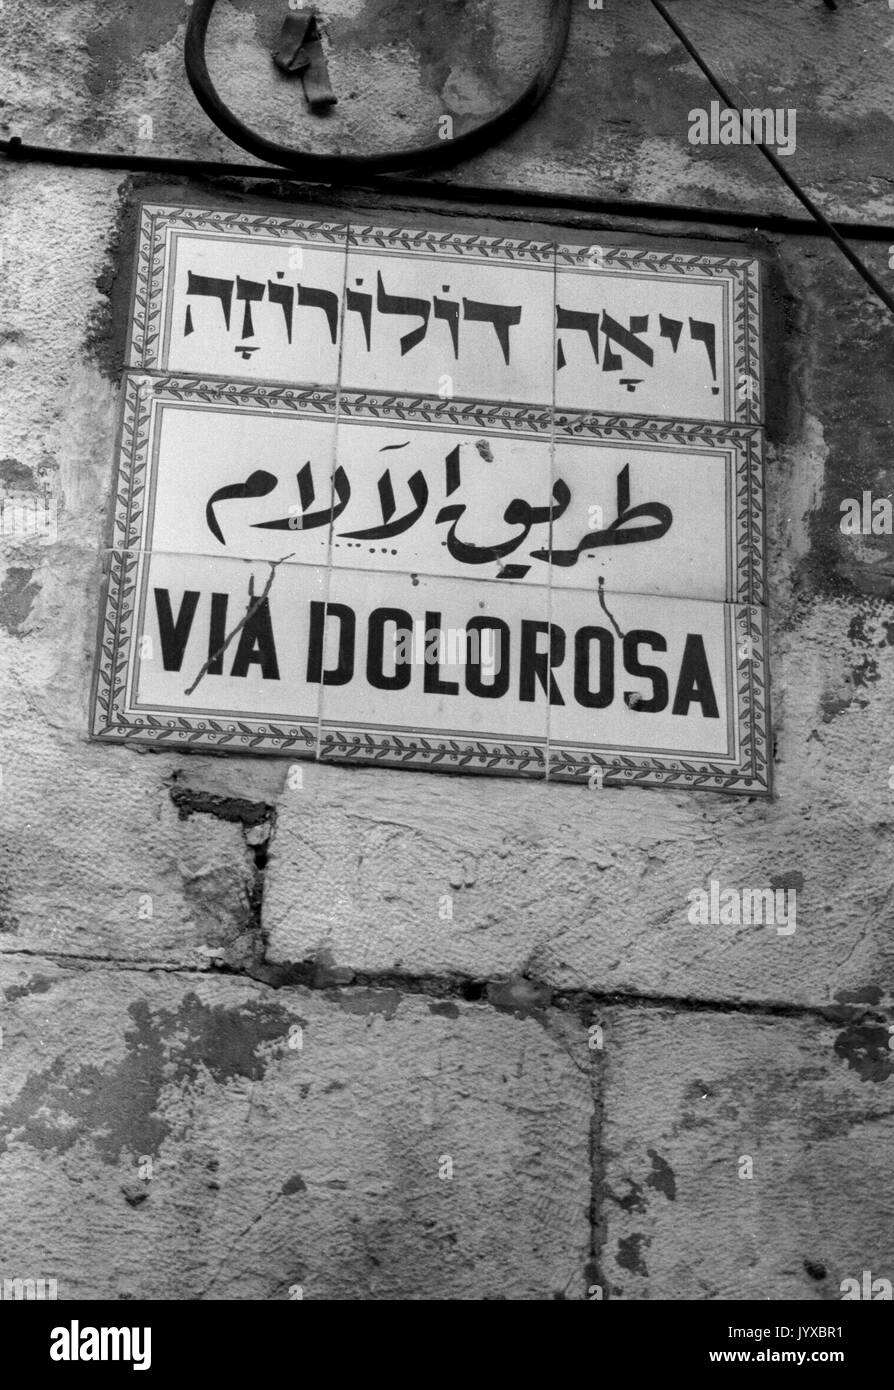 Via Dolorosa jerusalem 1987april 03 biblical environments believed to be the way Jesus walked on the way to crucifixion - Stock Image